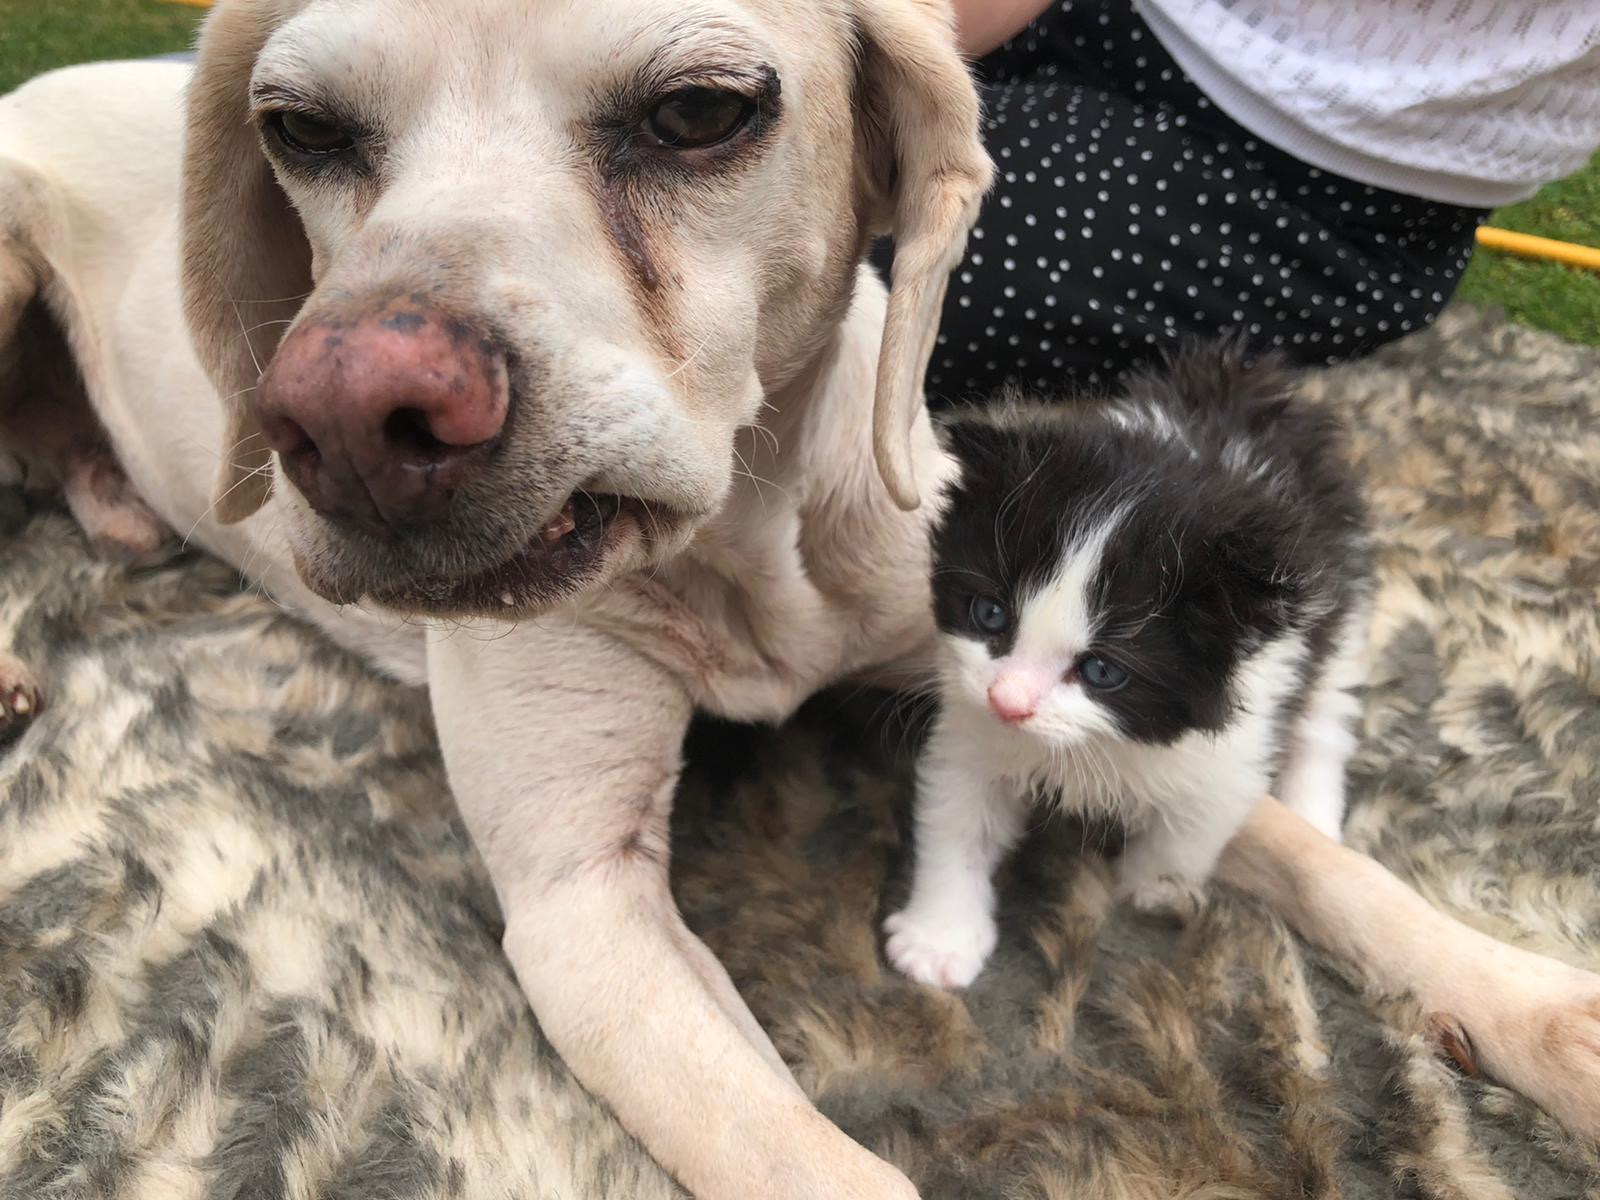 Rescue Beagle Helping to Raise Homeless Kitten During Lockdown